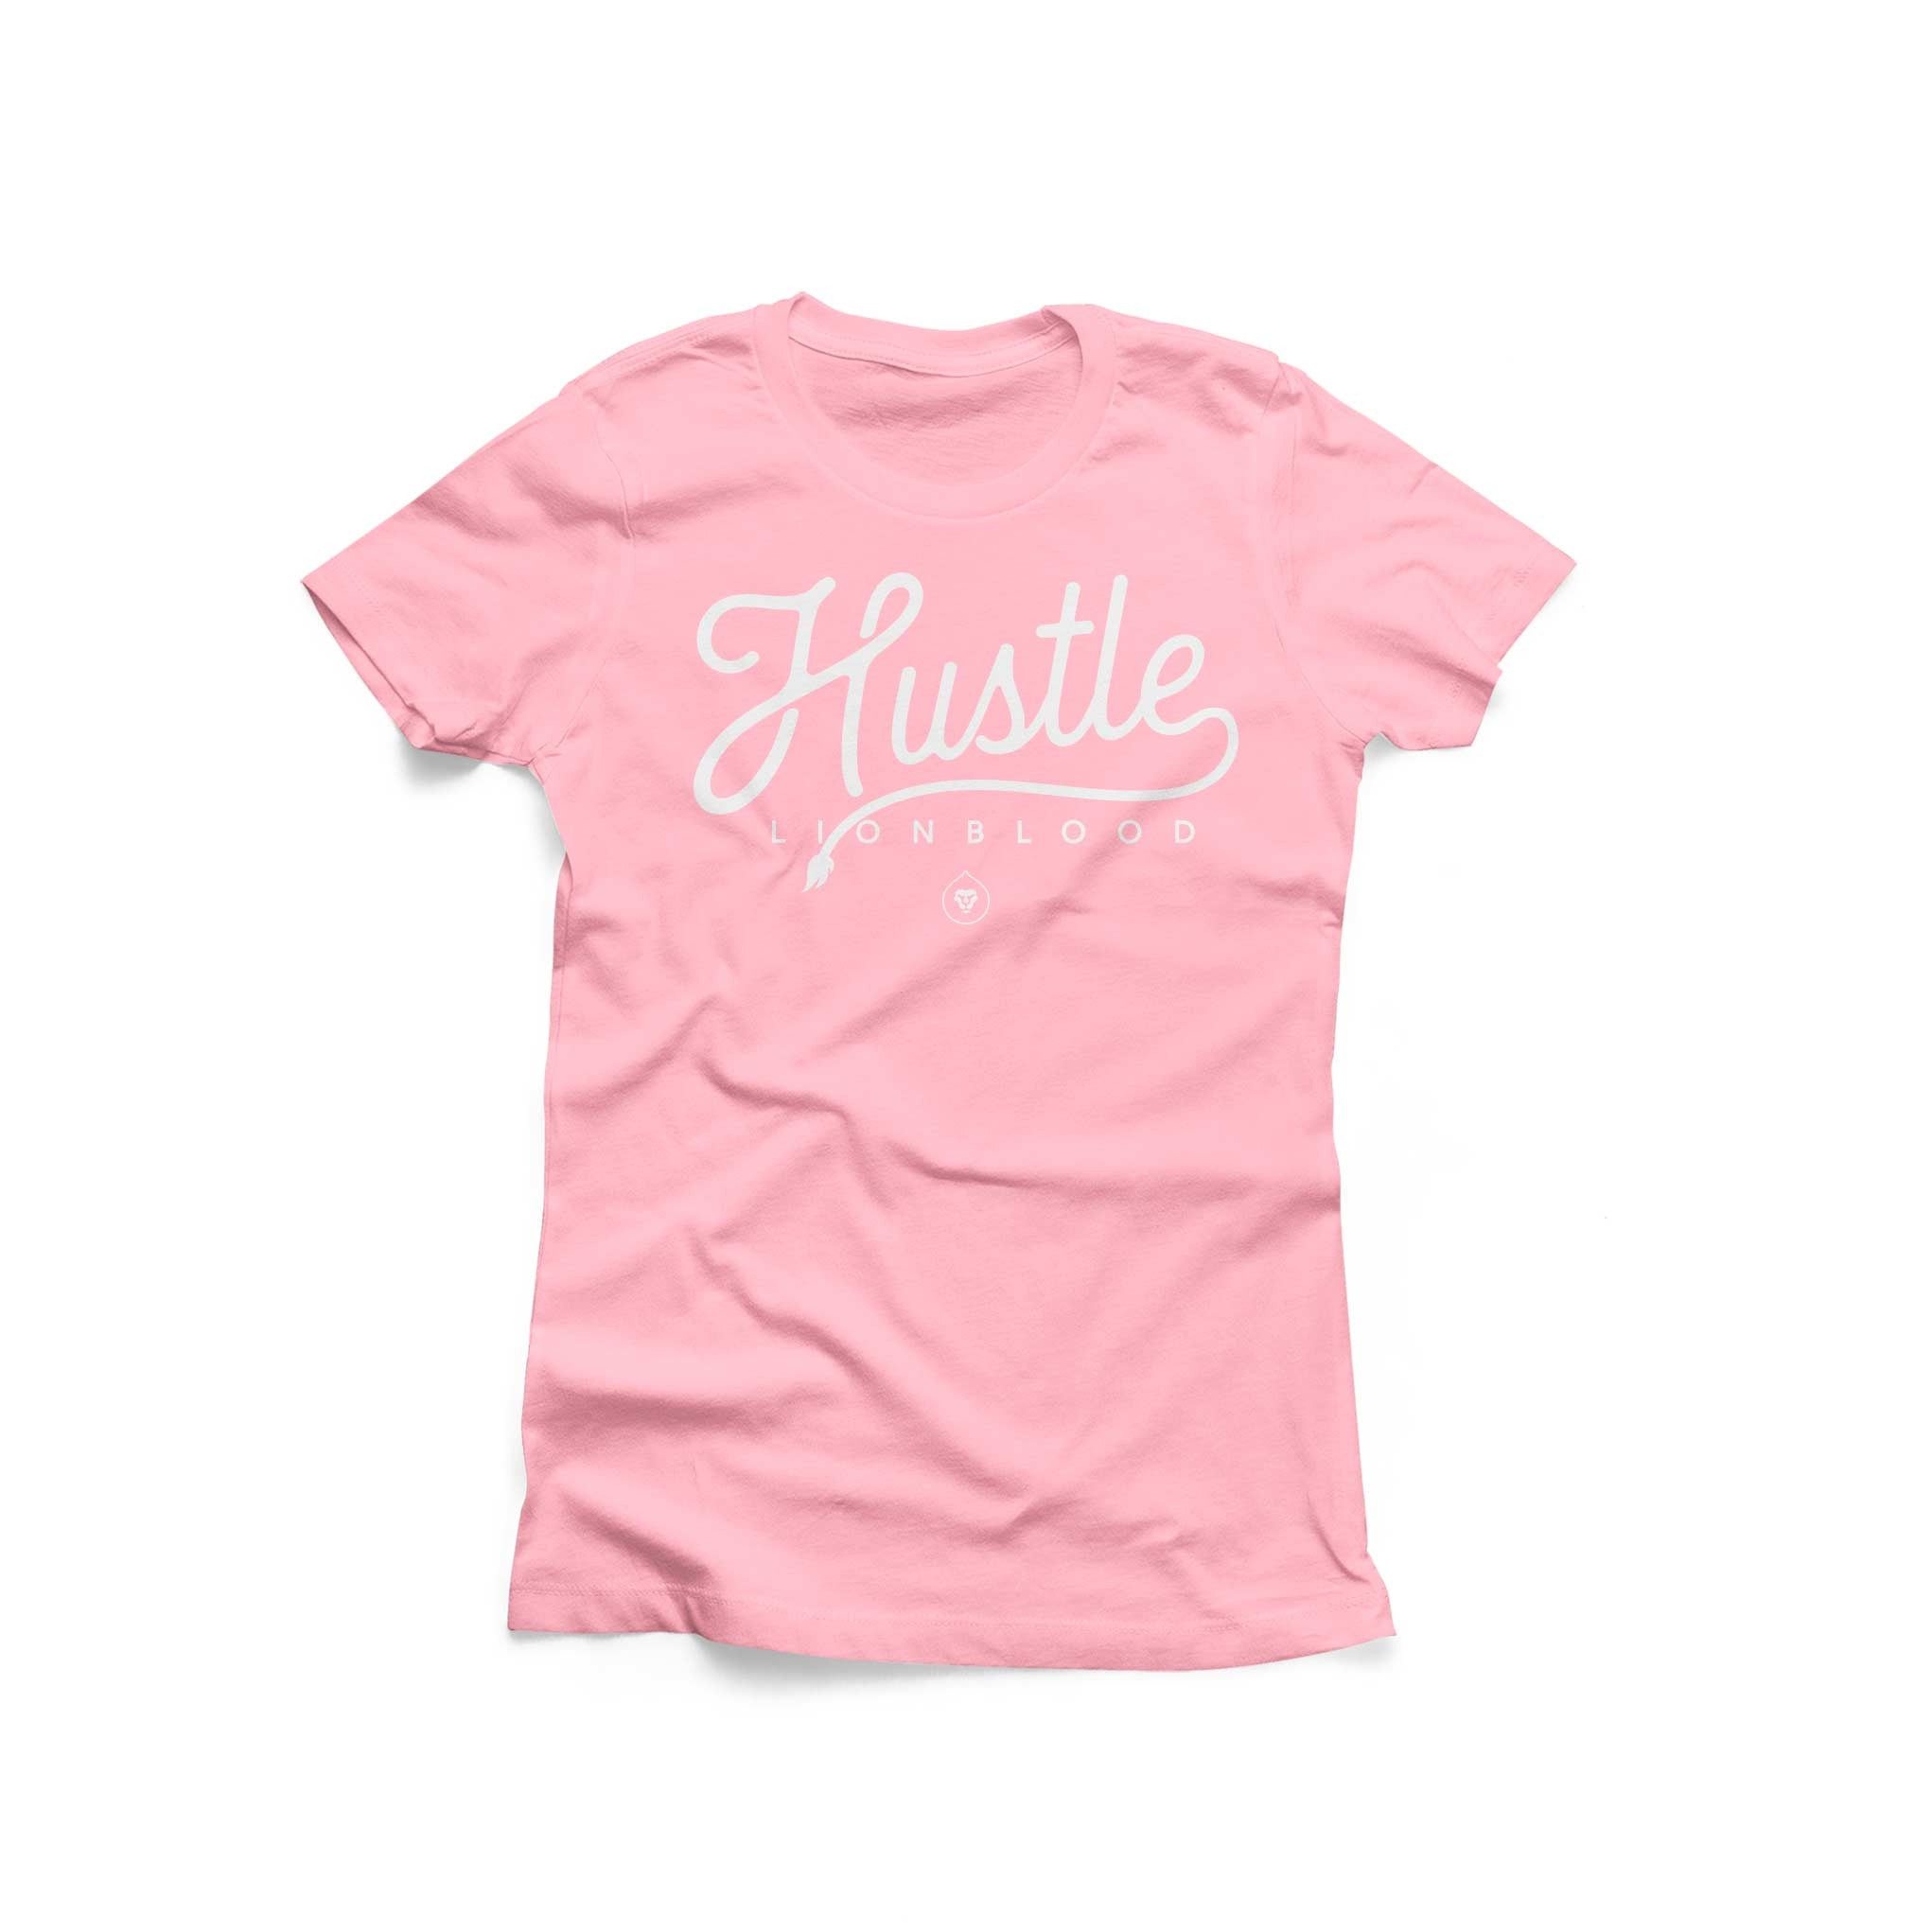 LADIES HUSTLE